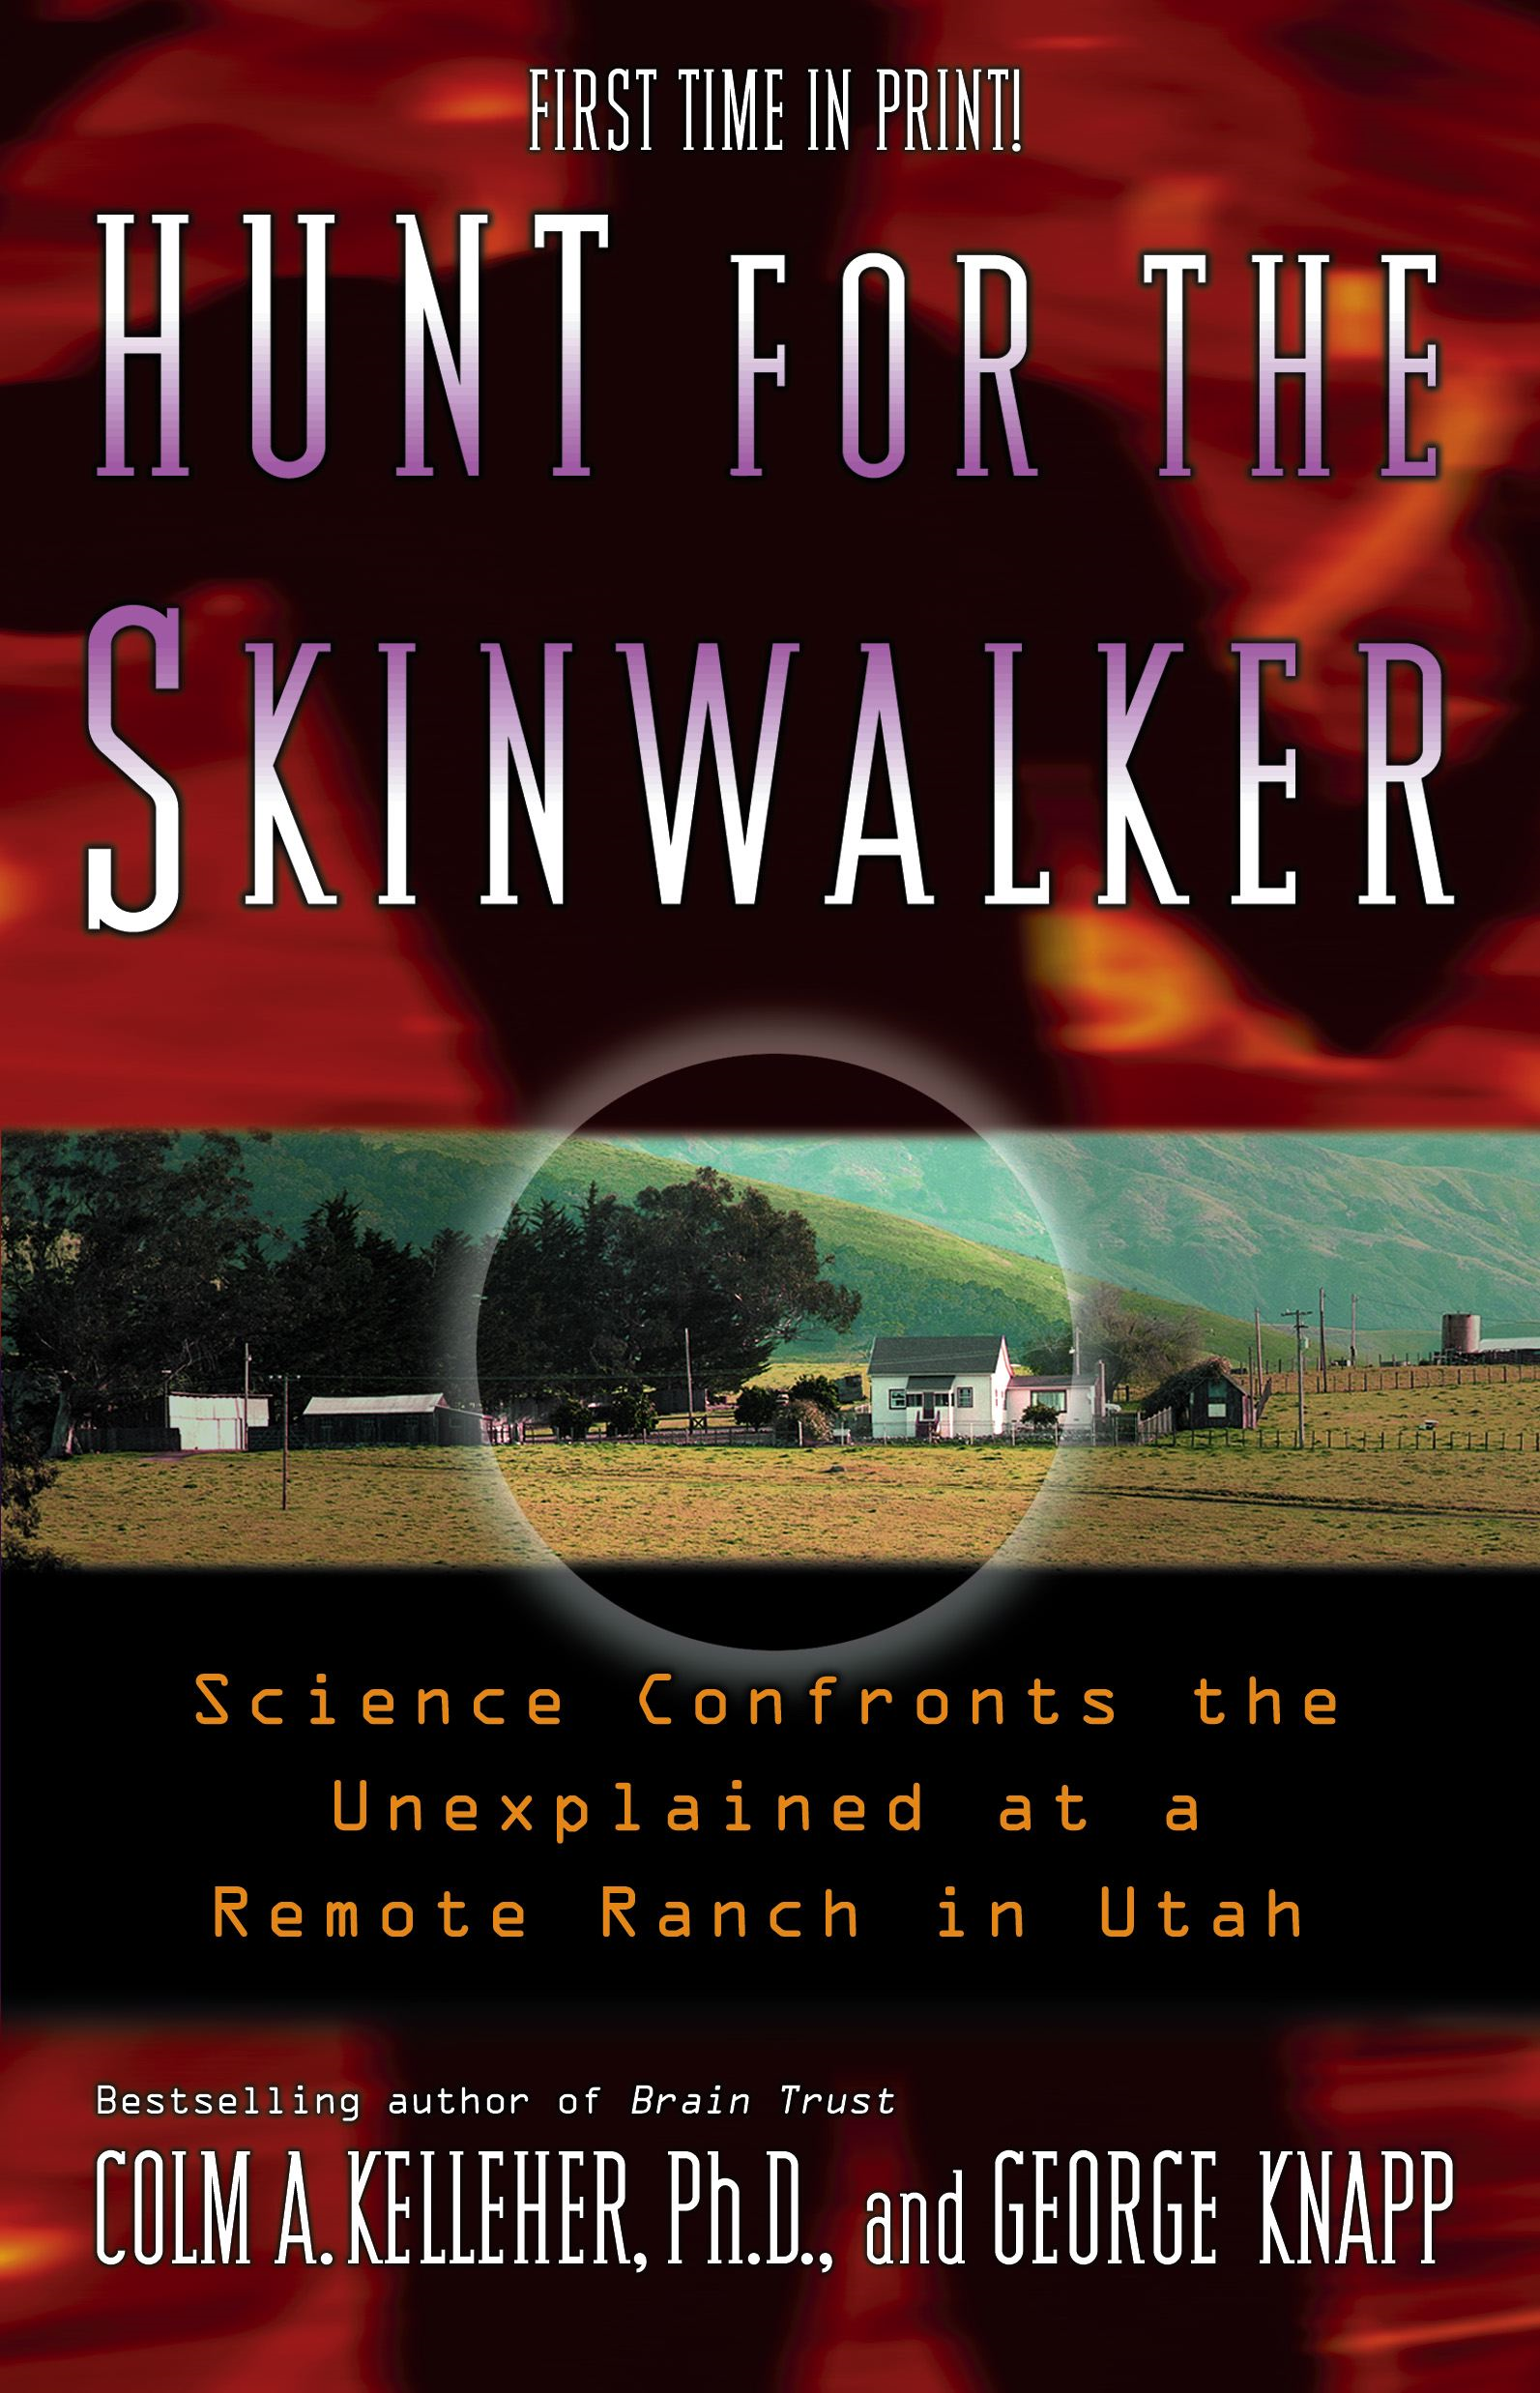 Hunt for the Skinwalker Science Confronts the Unexplained at a Remote Ranch in Utah